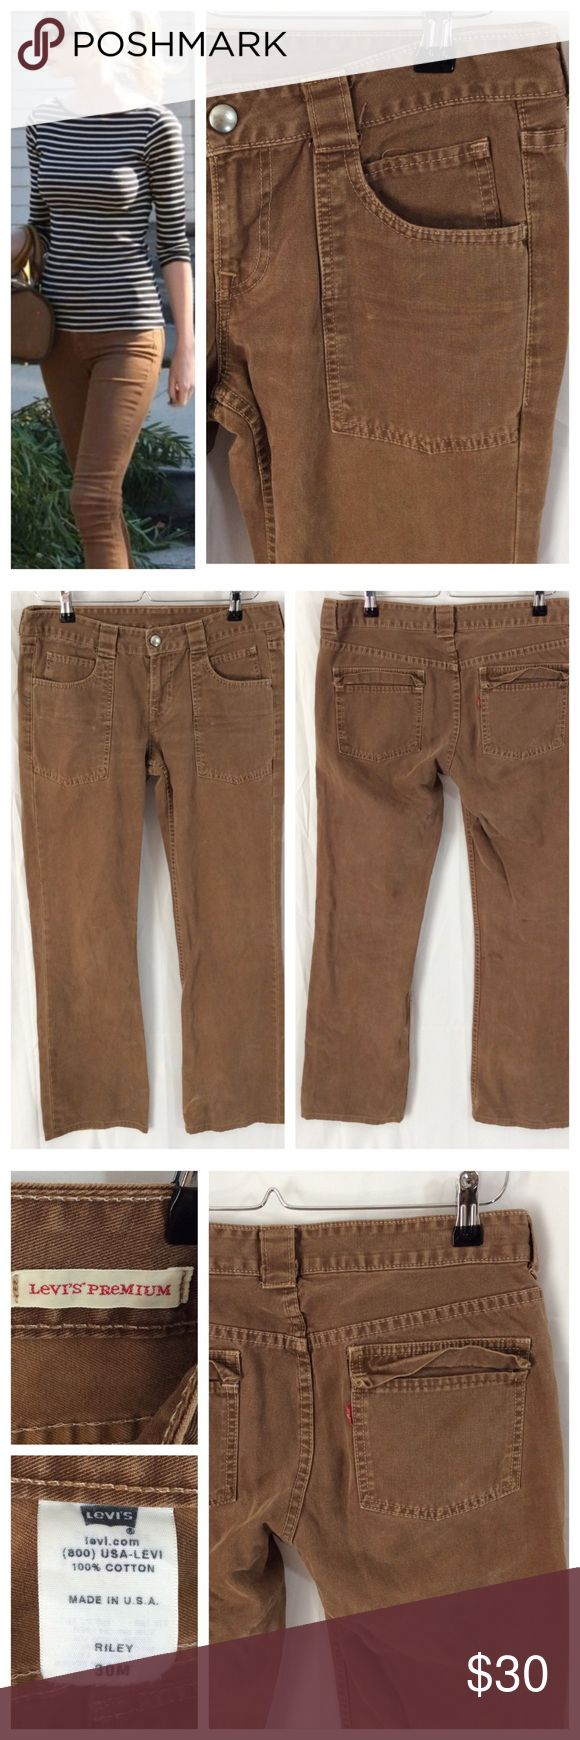 """Levi's Premium Camel Jeans I love these Levi's, all over factory broken in feel; front patch pockets, back tab pockets. Snap and zip closure with belt loops, can roll for trend-on look. Size 30M, 16"""" waist, 31"""" inseam. Great condition. Levi's Jeans"""